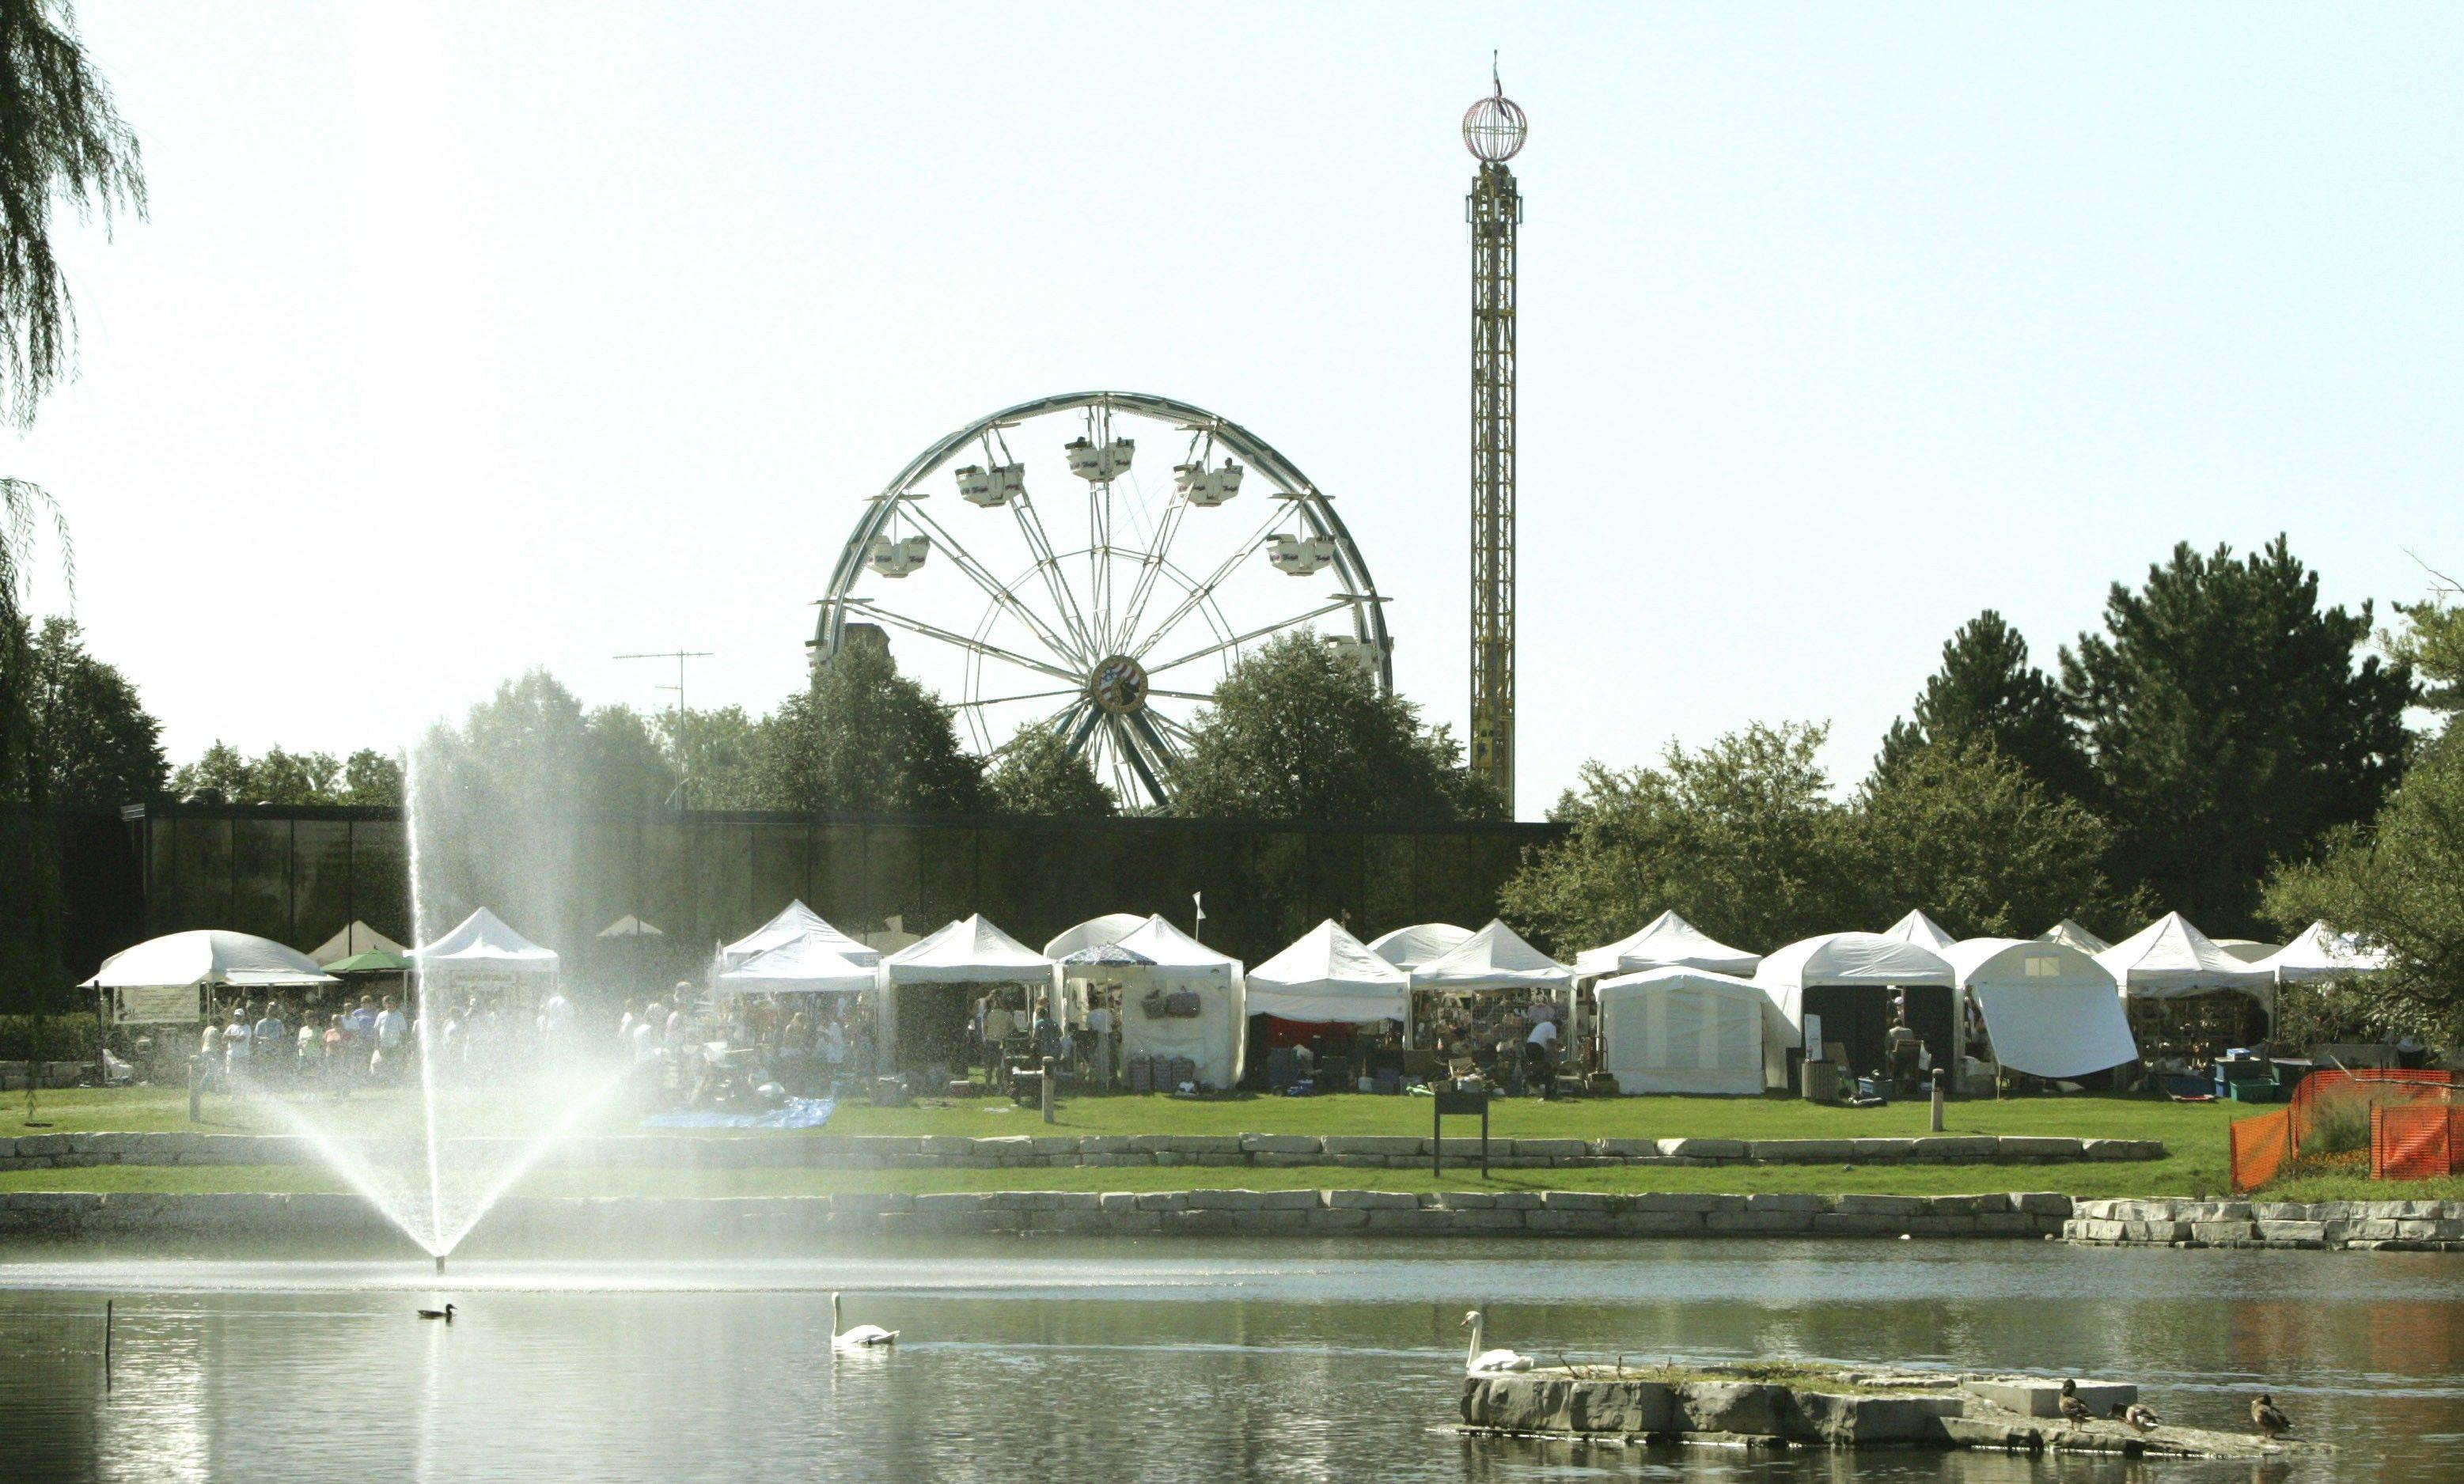 The municipal center grounds are alive during the first day of Schaumburg's 2007 Septemberfest.